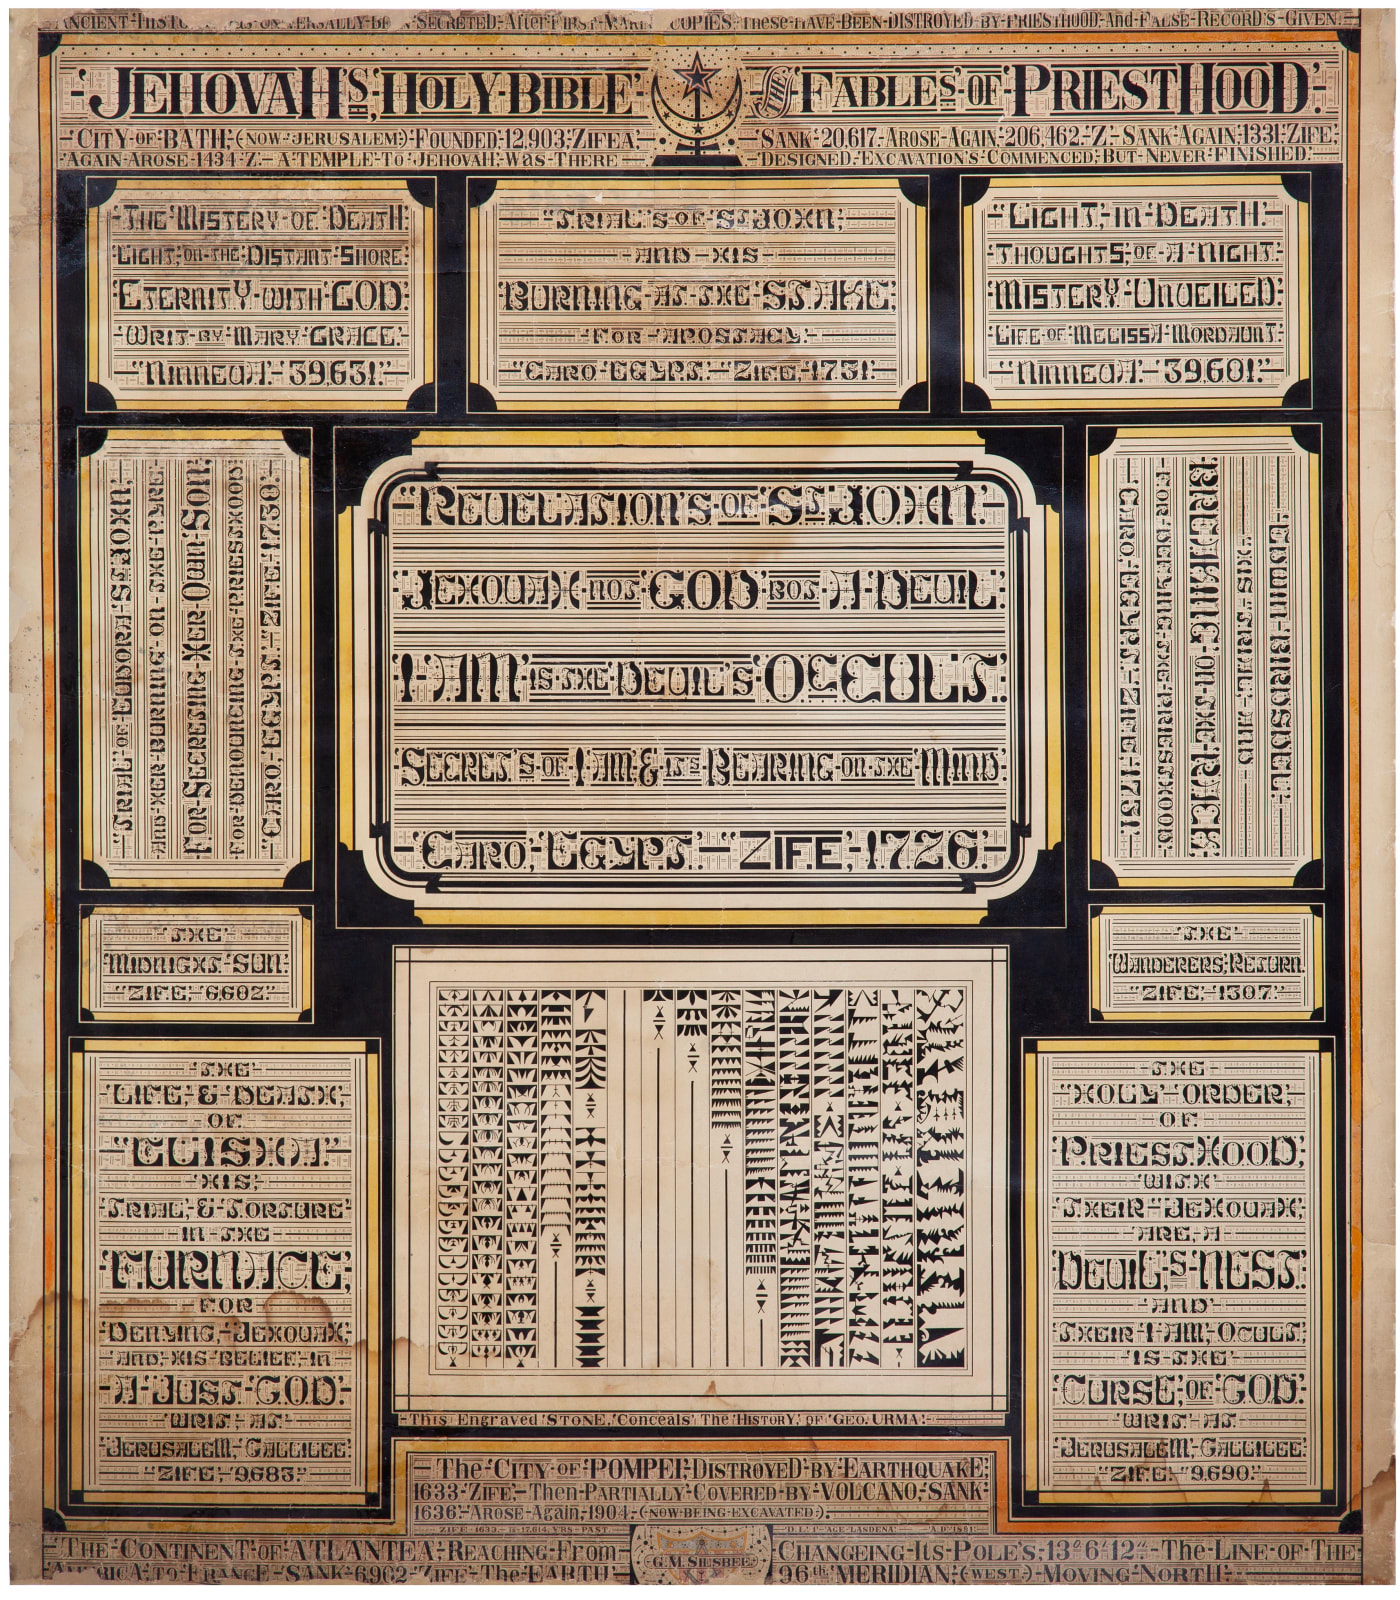 Jehovah's Holy Bible - Fables of Priesthood, ca. 1891 Ink on paper 40 1/2 x 35 5/8 in. 102.9 x 90.5 cm. (GMS6)